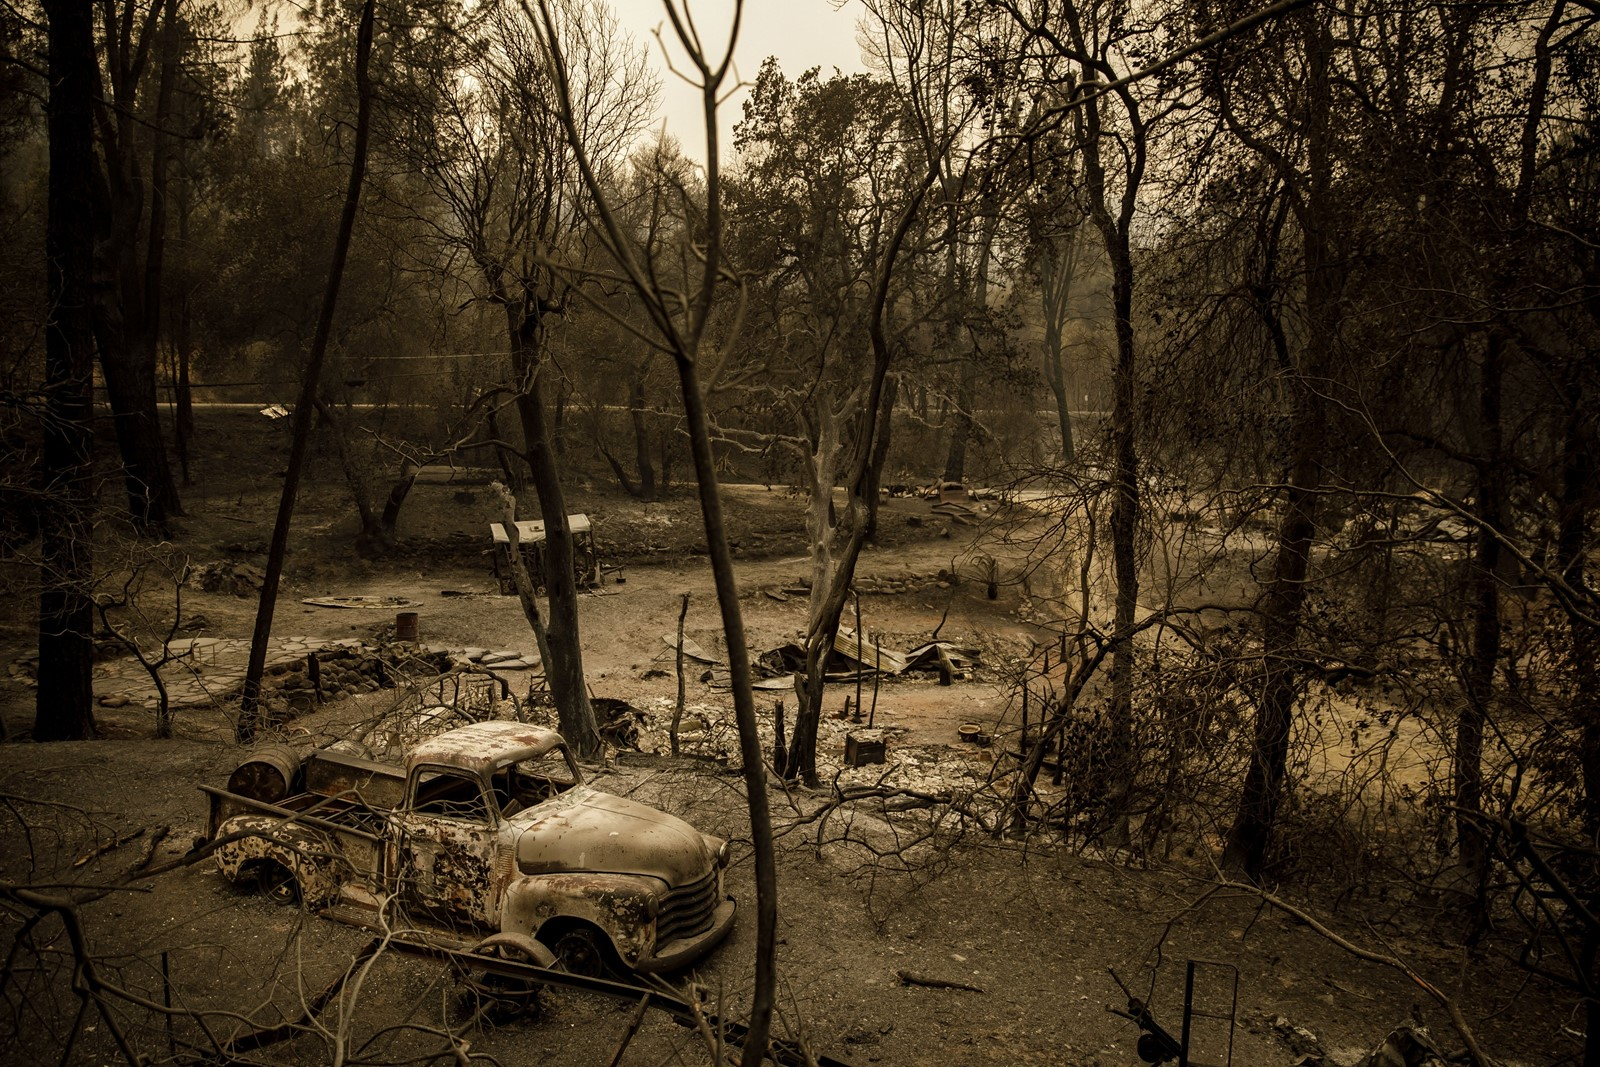 Scorched earth remains after the Carr fire swept through Shasta, California. Six people have died in the blaze, including four civilians. — Photograph: Marcus Yam/Los Angeles Times.